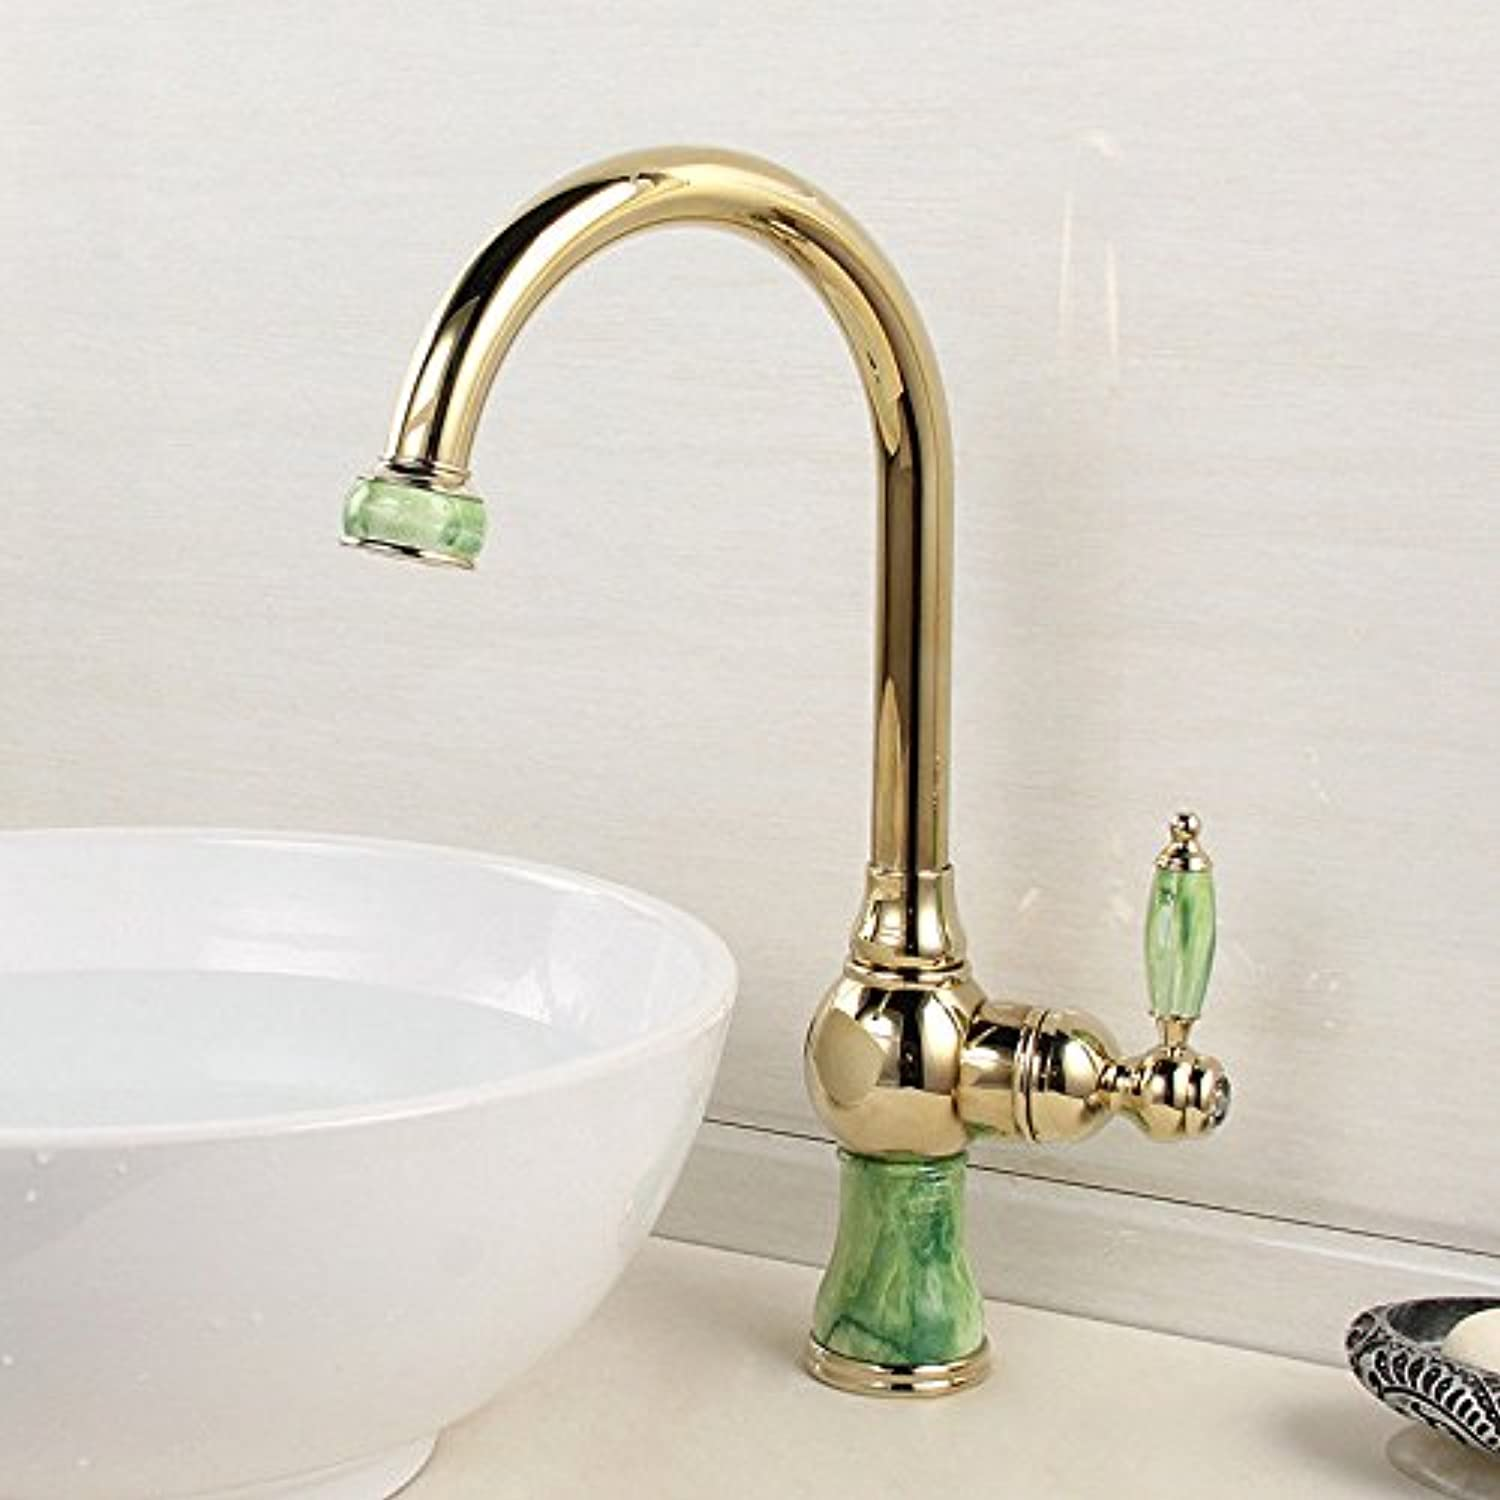 Lalaky Taps Faucet Kitchen Mixer Sink Waterfall Bathroom Mixer Basin Mixer Tap for Kitchen Bathroom and Washroom Copper Single gold